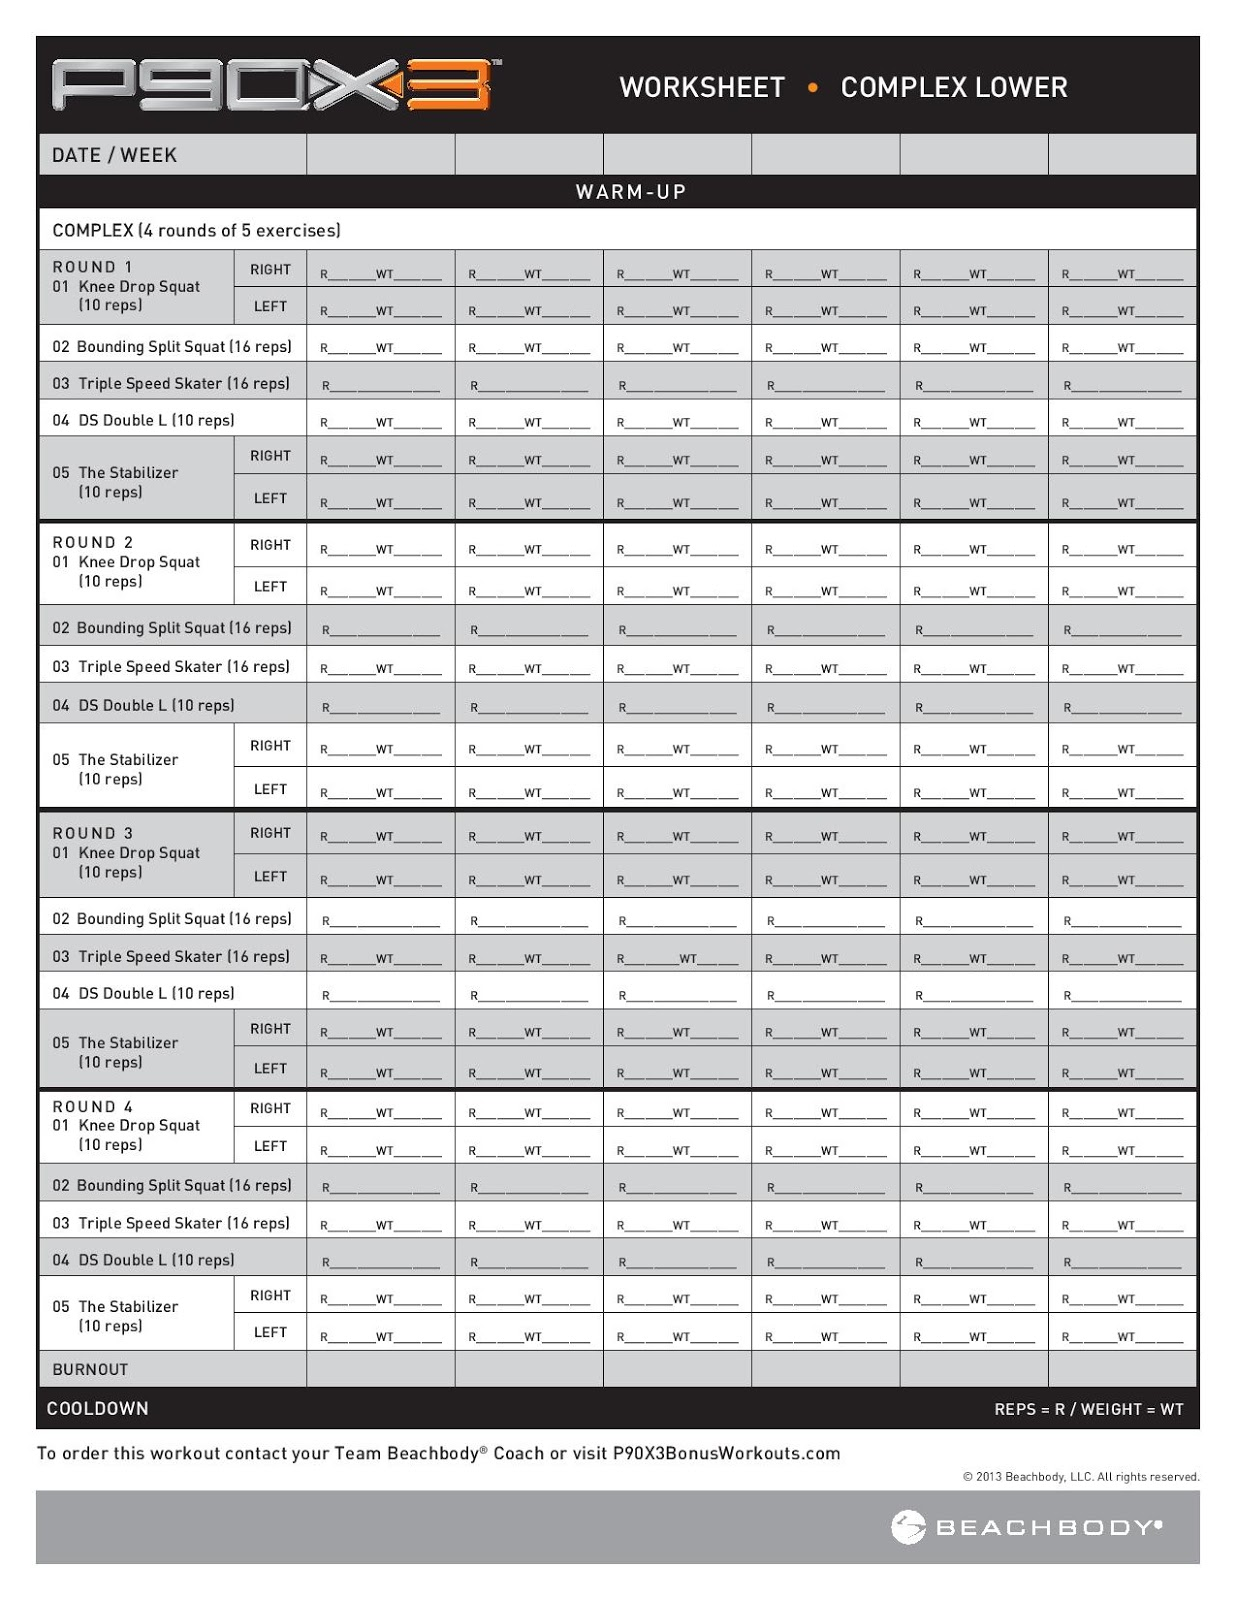 P90x3 Worksheet Pdf p90x worksheets pdf due to p90x3 worksheet – P90x Worksheets Pdf